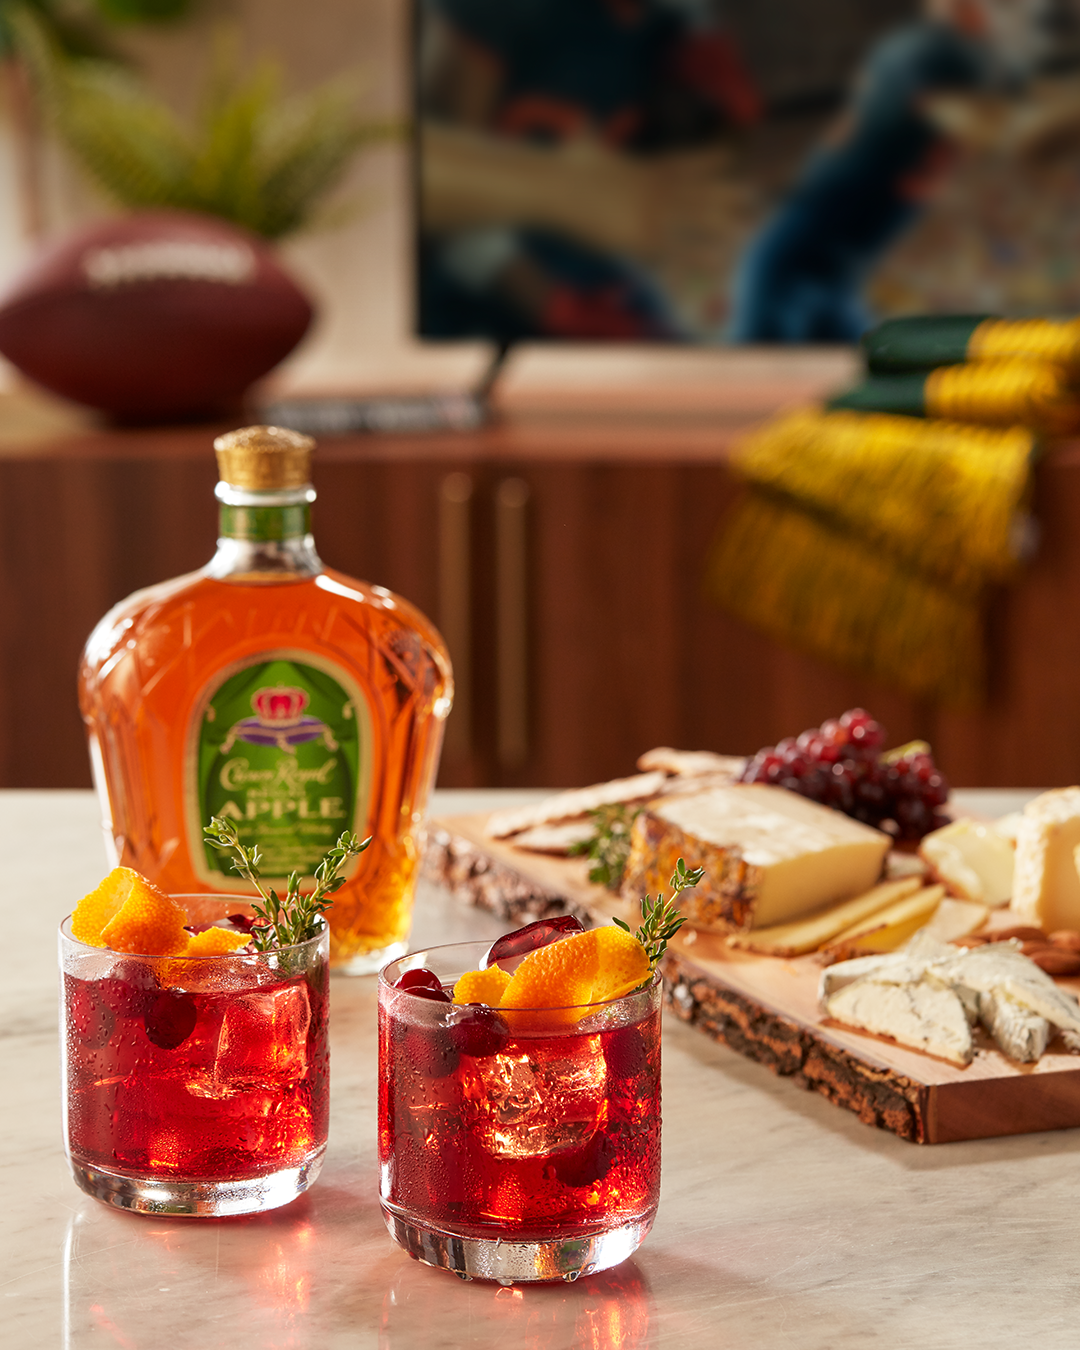 Green Bay Packers (Crownberry Apple) with a bottle of Crown Royal Regal Apple